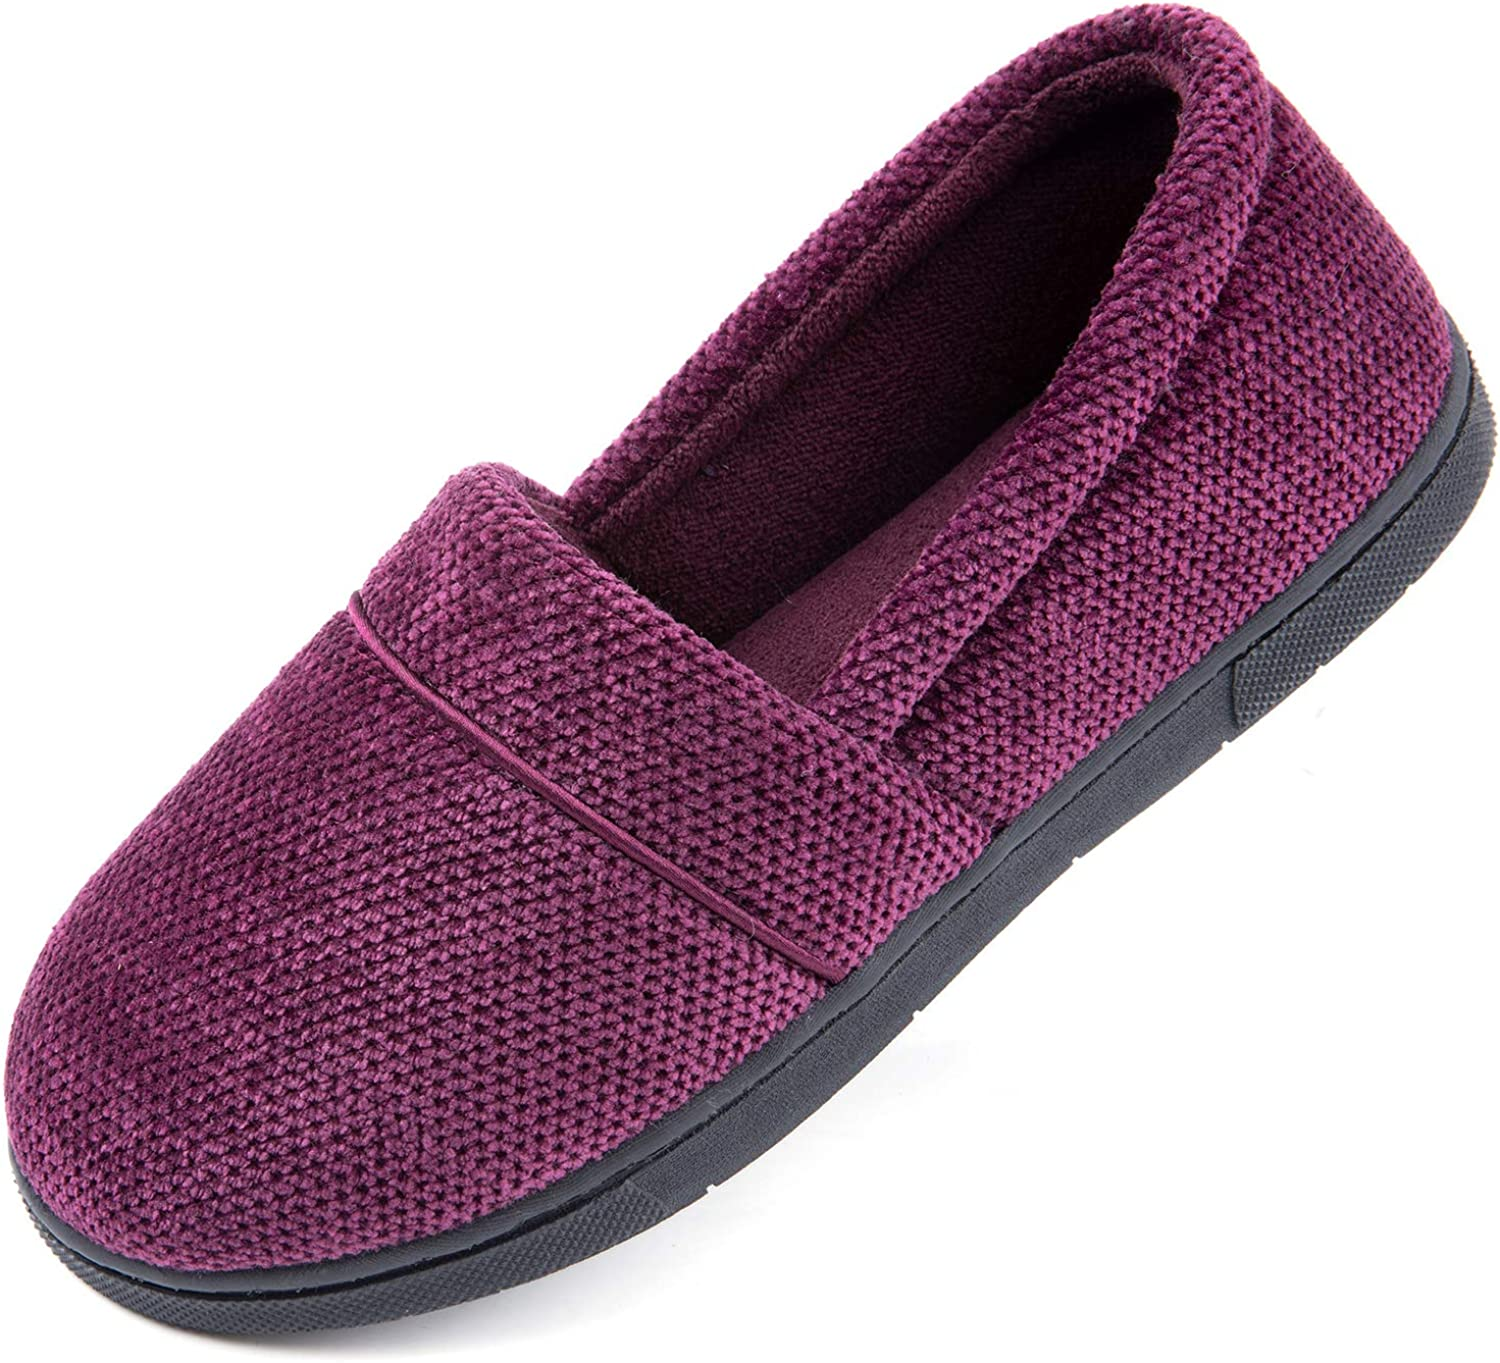 ULTRAIDEAS Women's Cozy Memory Foam Slipper, Lightweight Chenille House Shoes with Indoor Anti-Skid Rubber Sole